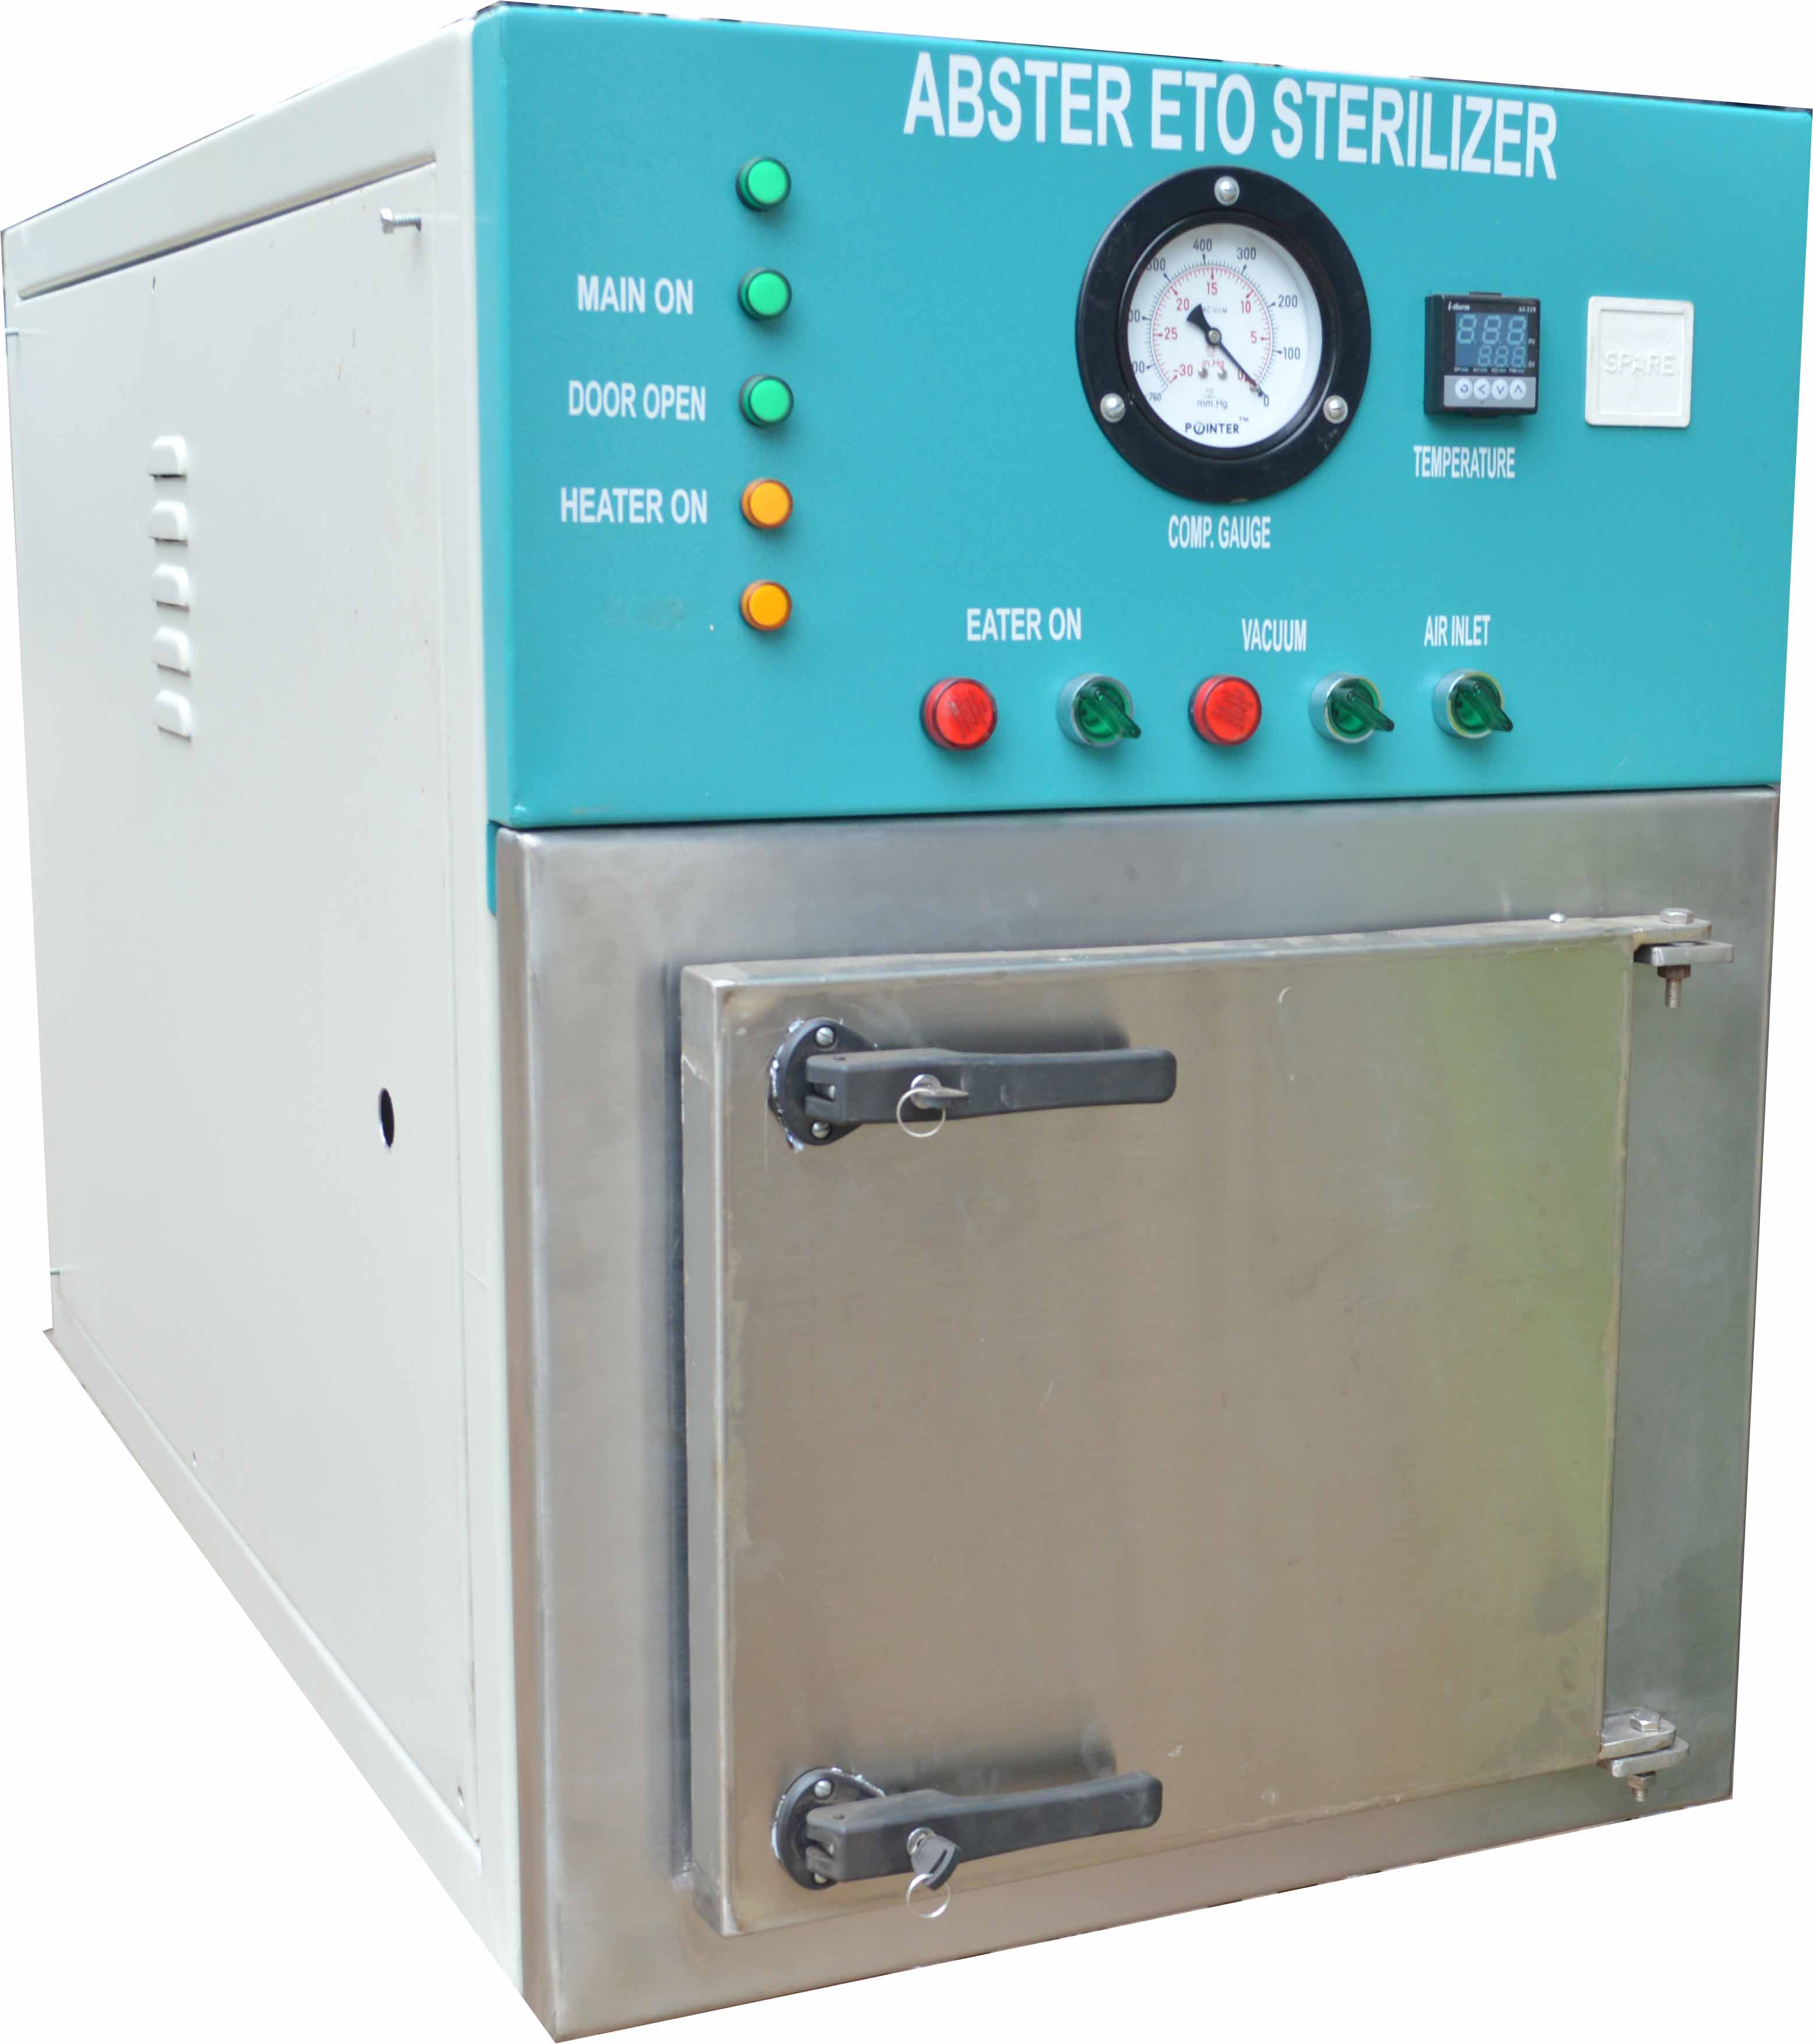 semi automatic eto sterilizer for hospital